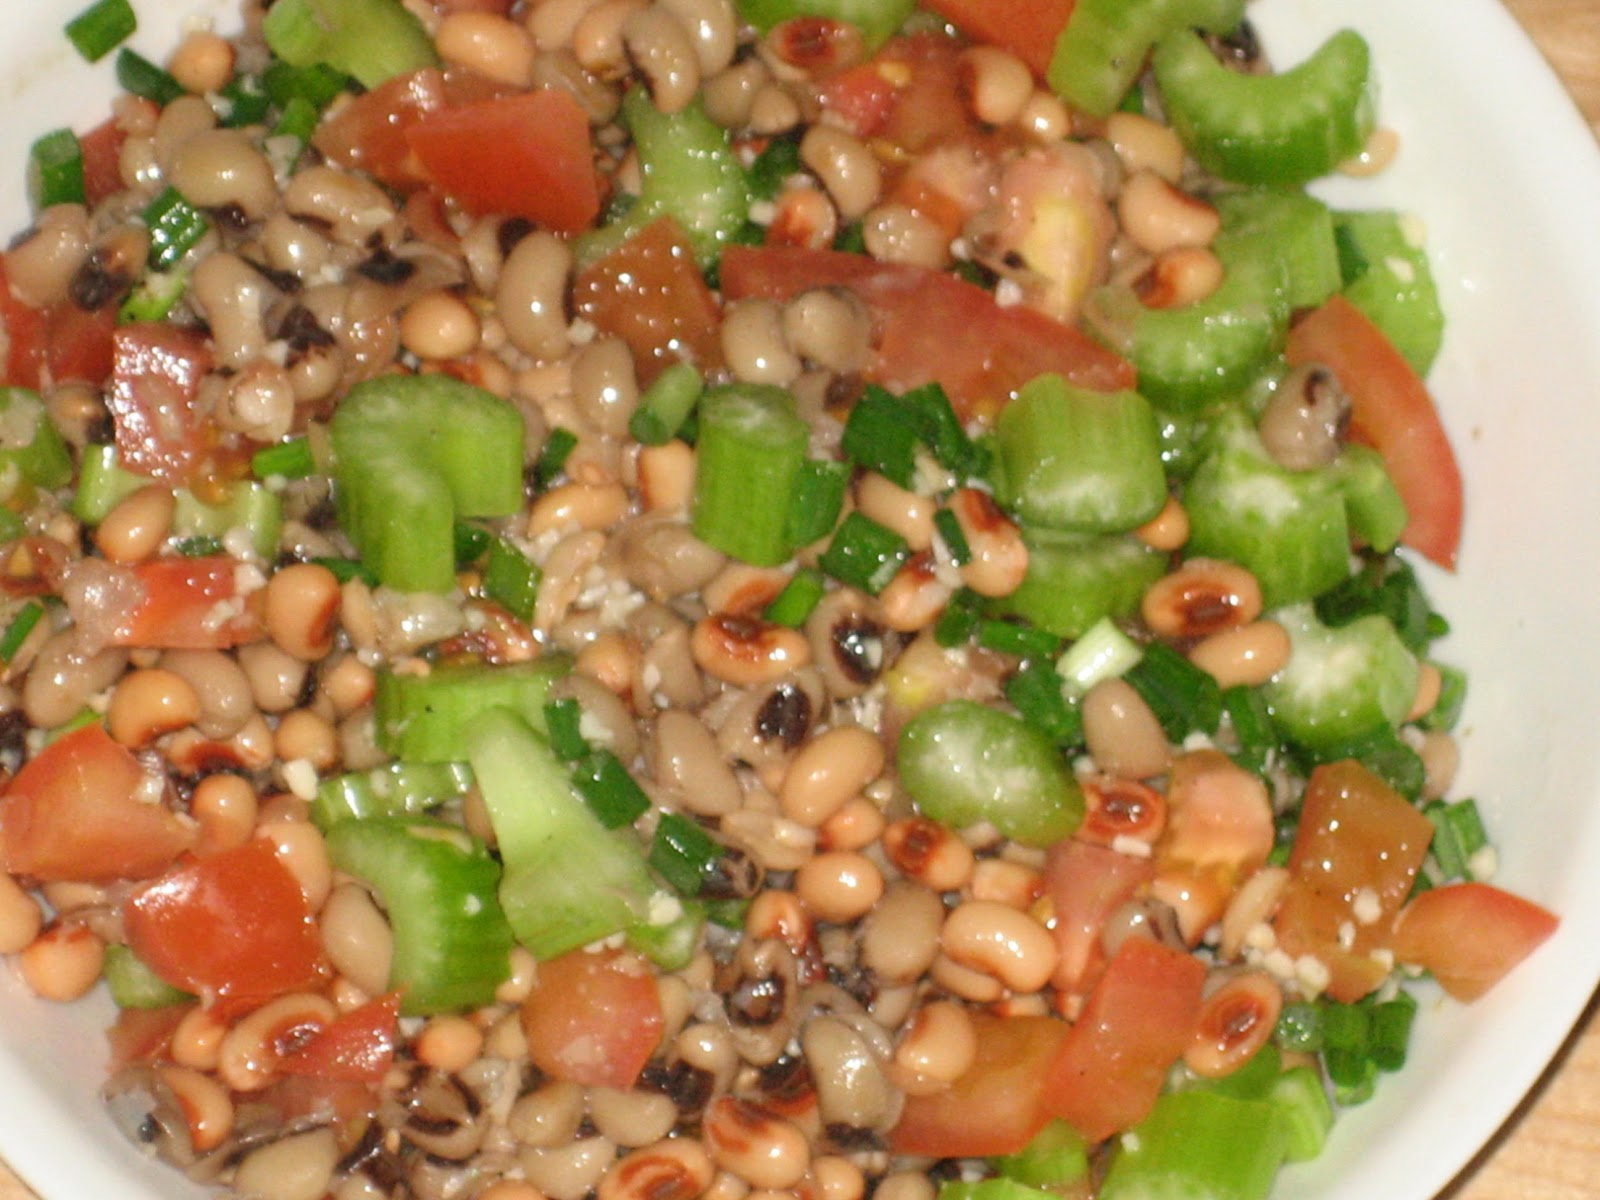 stuffedveggies: Black-Eyed Pea Salad